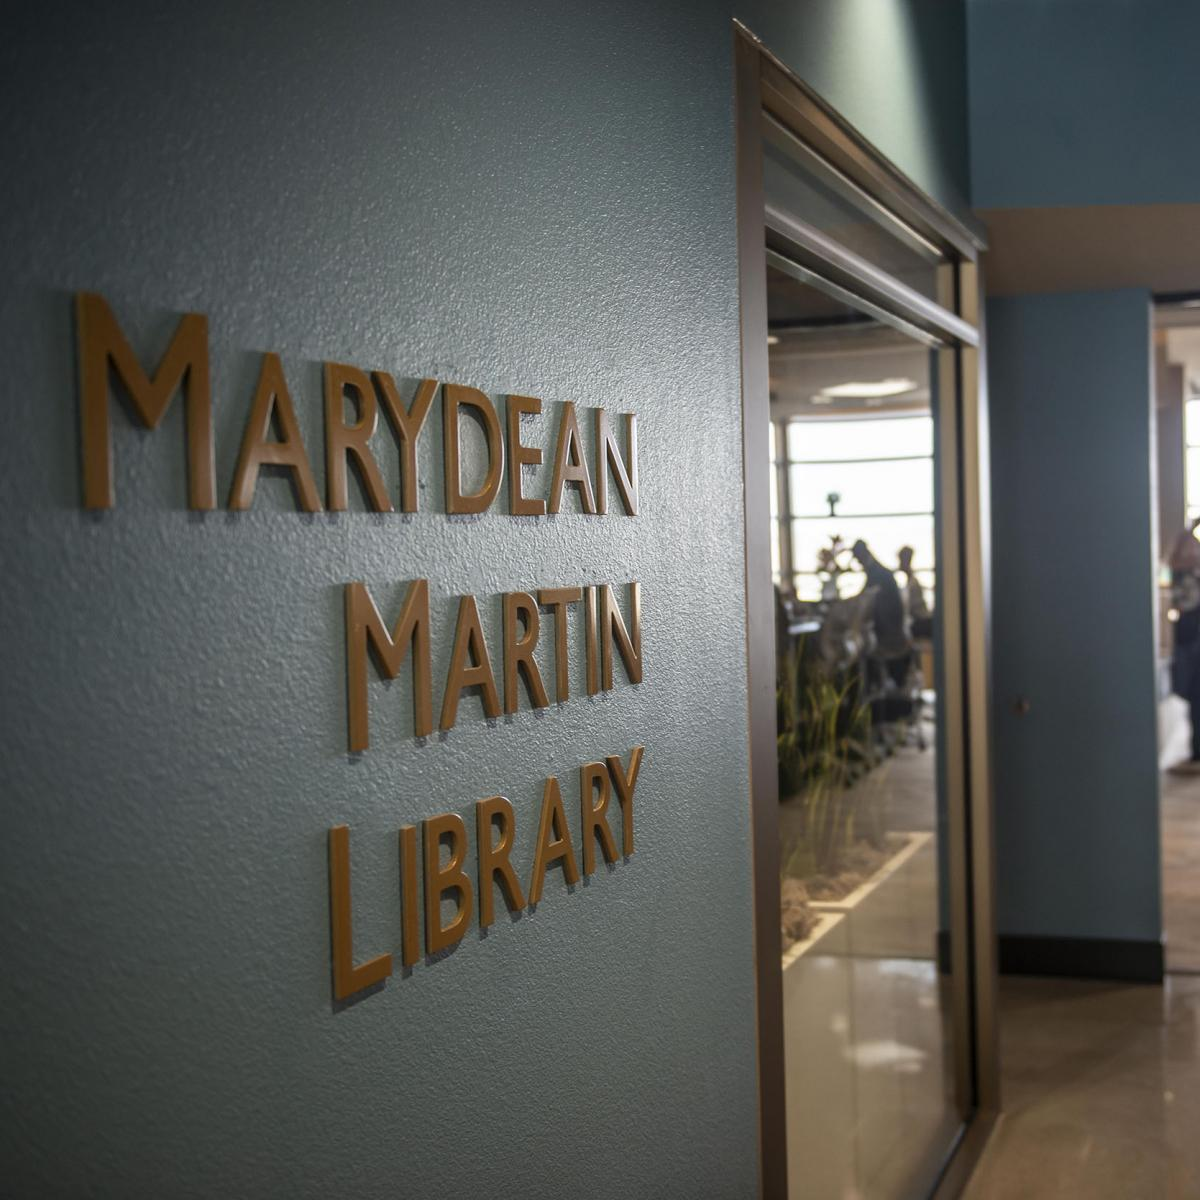 Photo of Nevada State College Marydean Martin Library